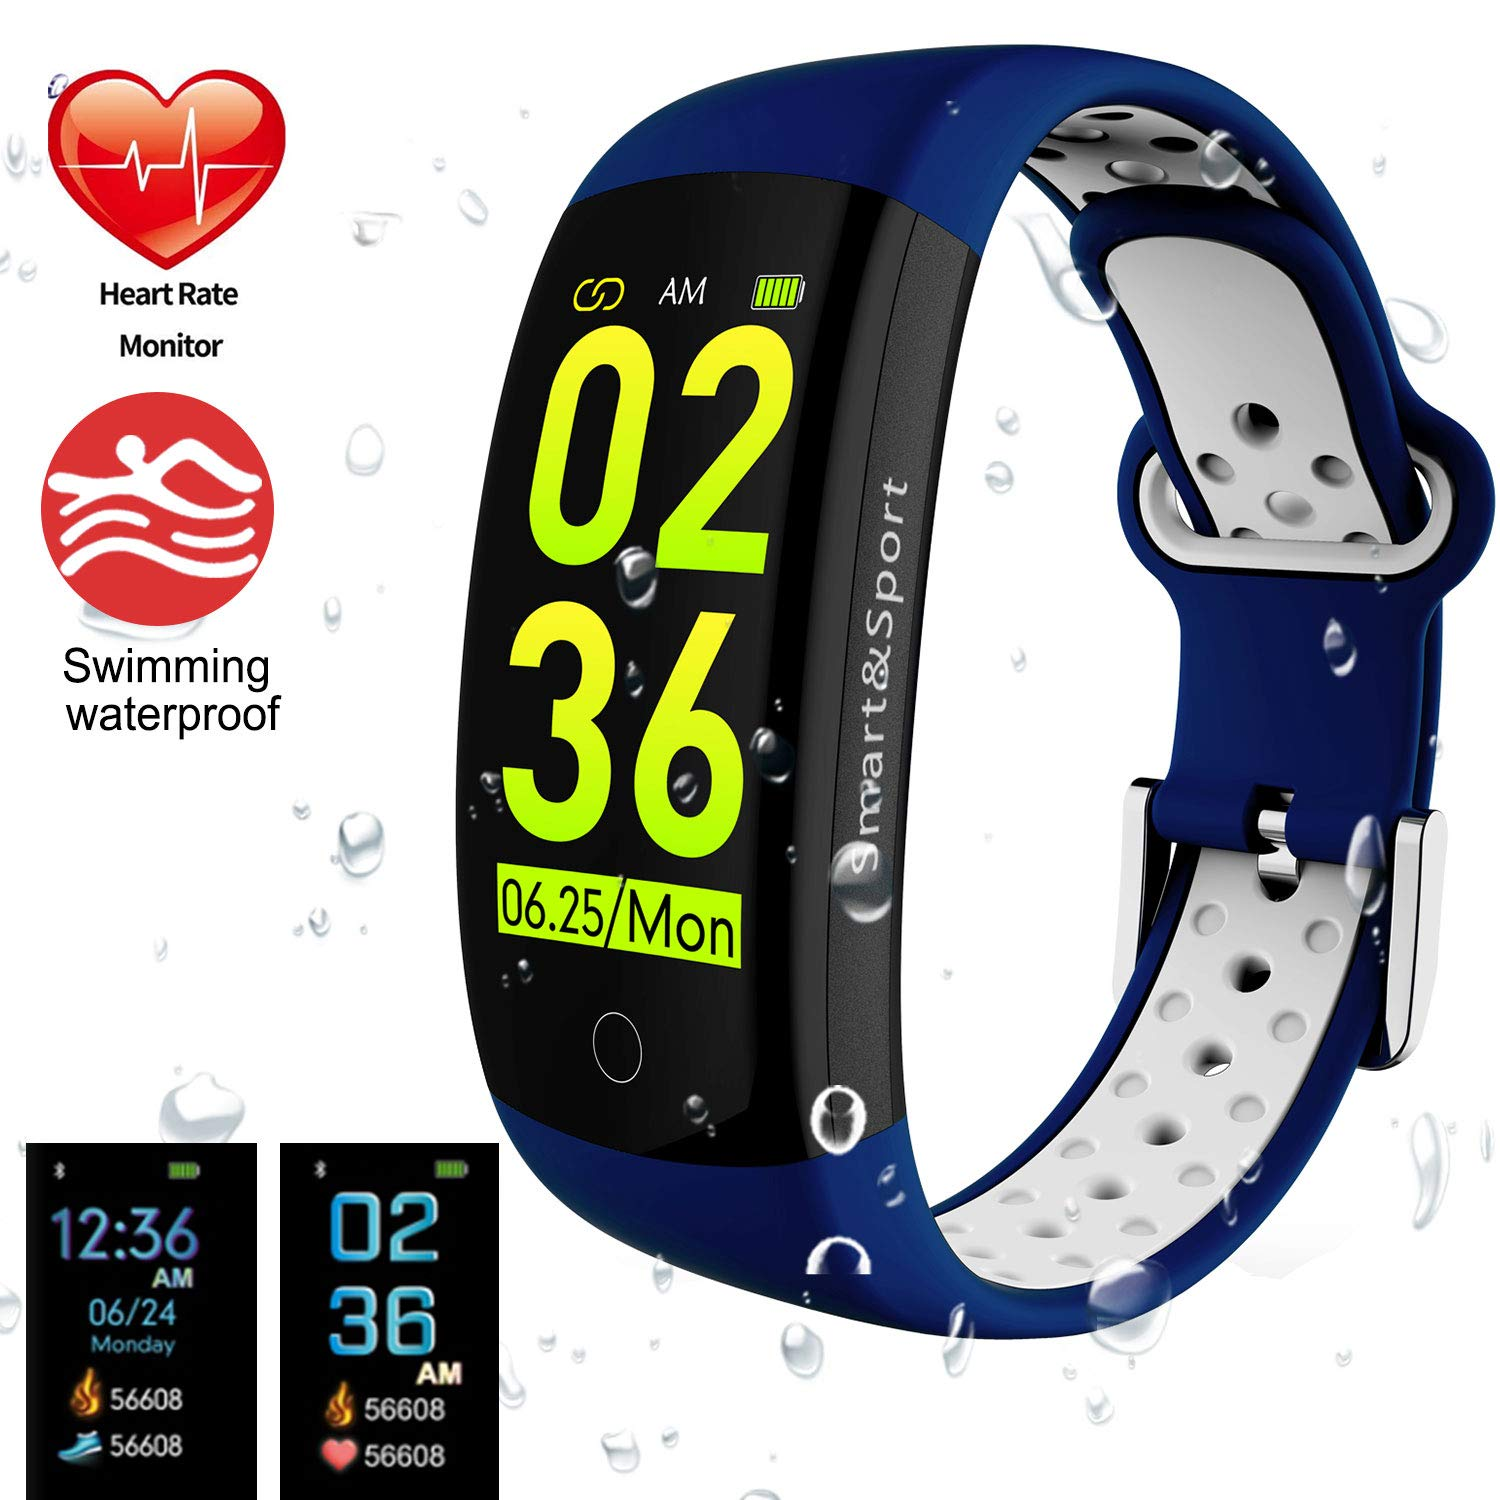 blueee+White feifuns Fitness Tracker Watch, Smart Bracelet IP68 Waterproof Swim Watch Activity Tracker with Heart Rate Monitor Step Calories Counter Sleep Pedometer Watch for Men Women Kids Android iOS